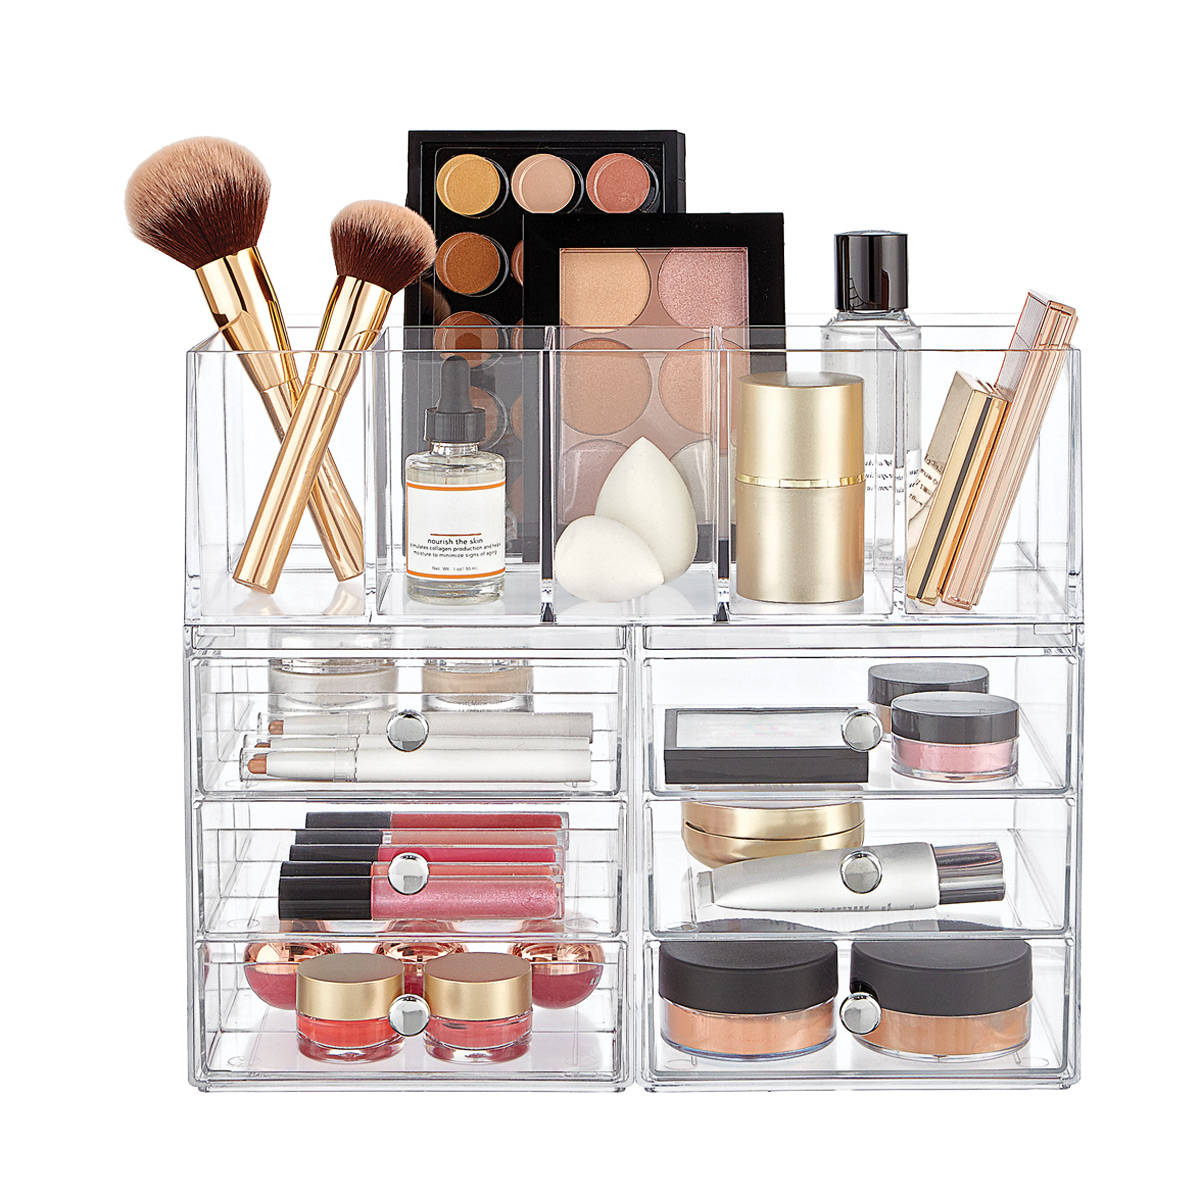 iDesign Clarity Makeup Storage Starter Kit